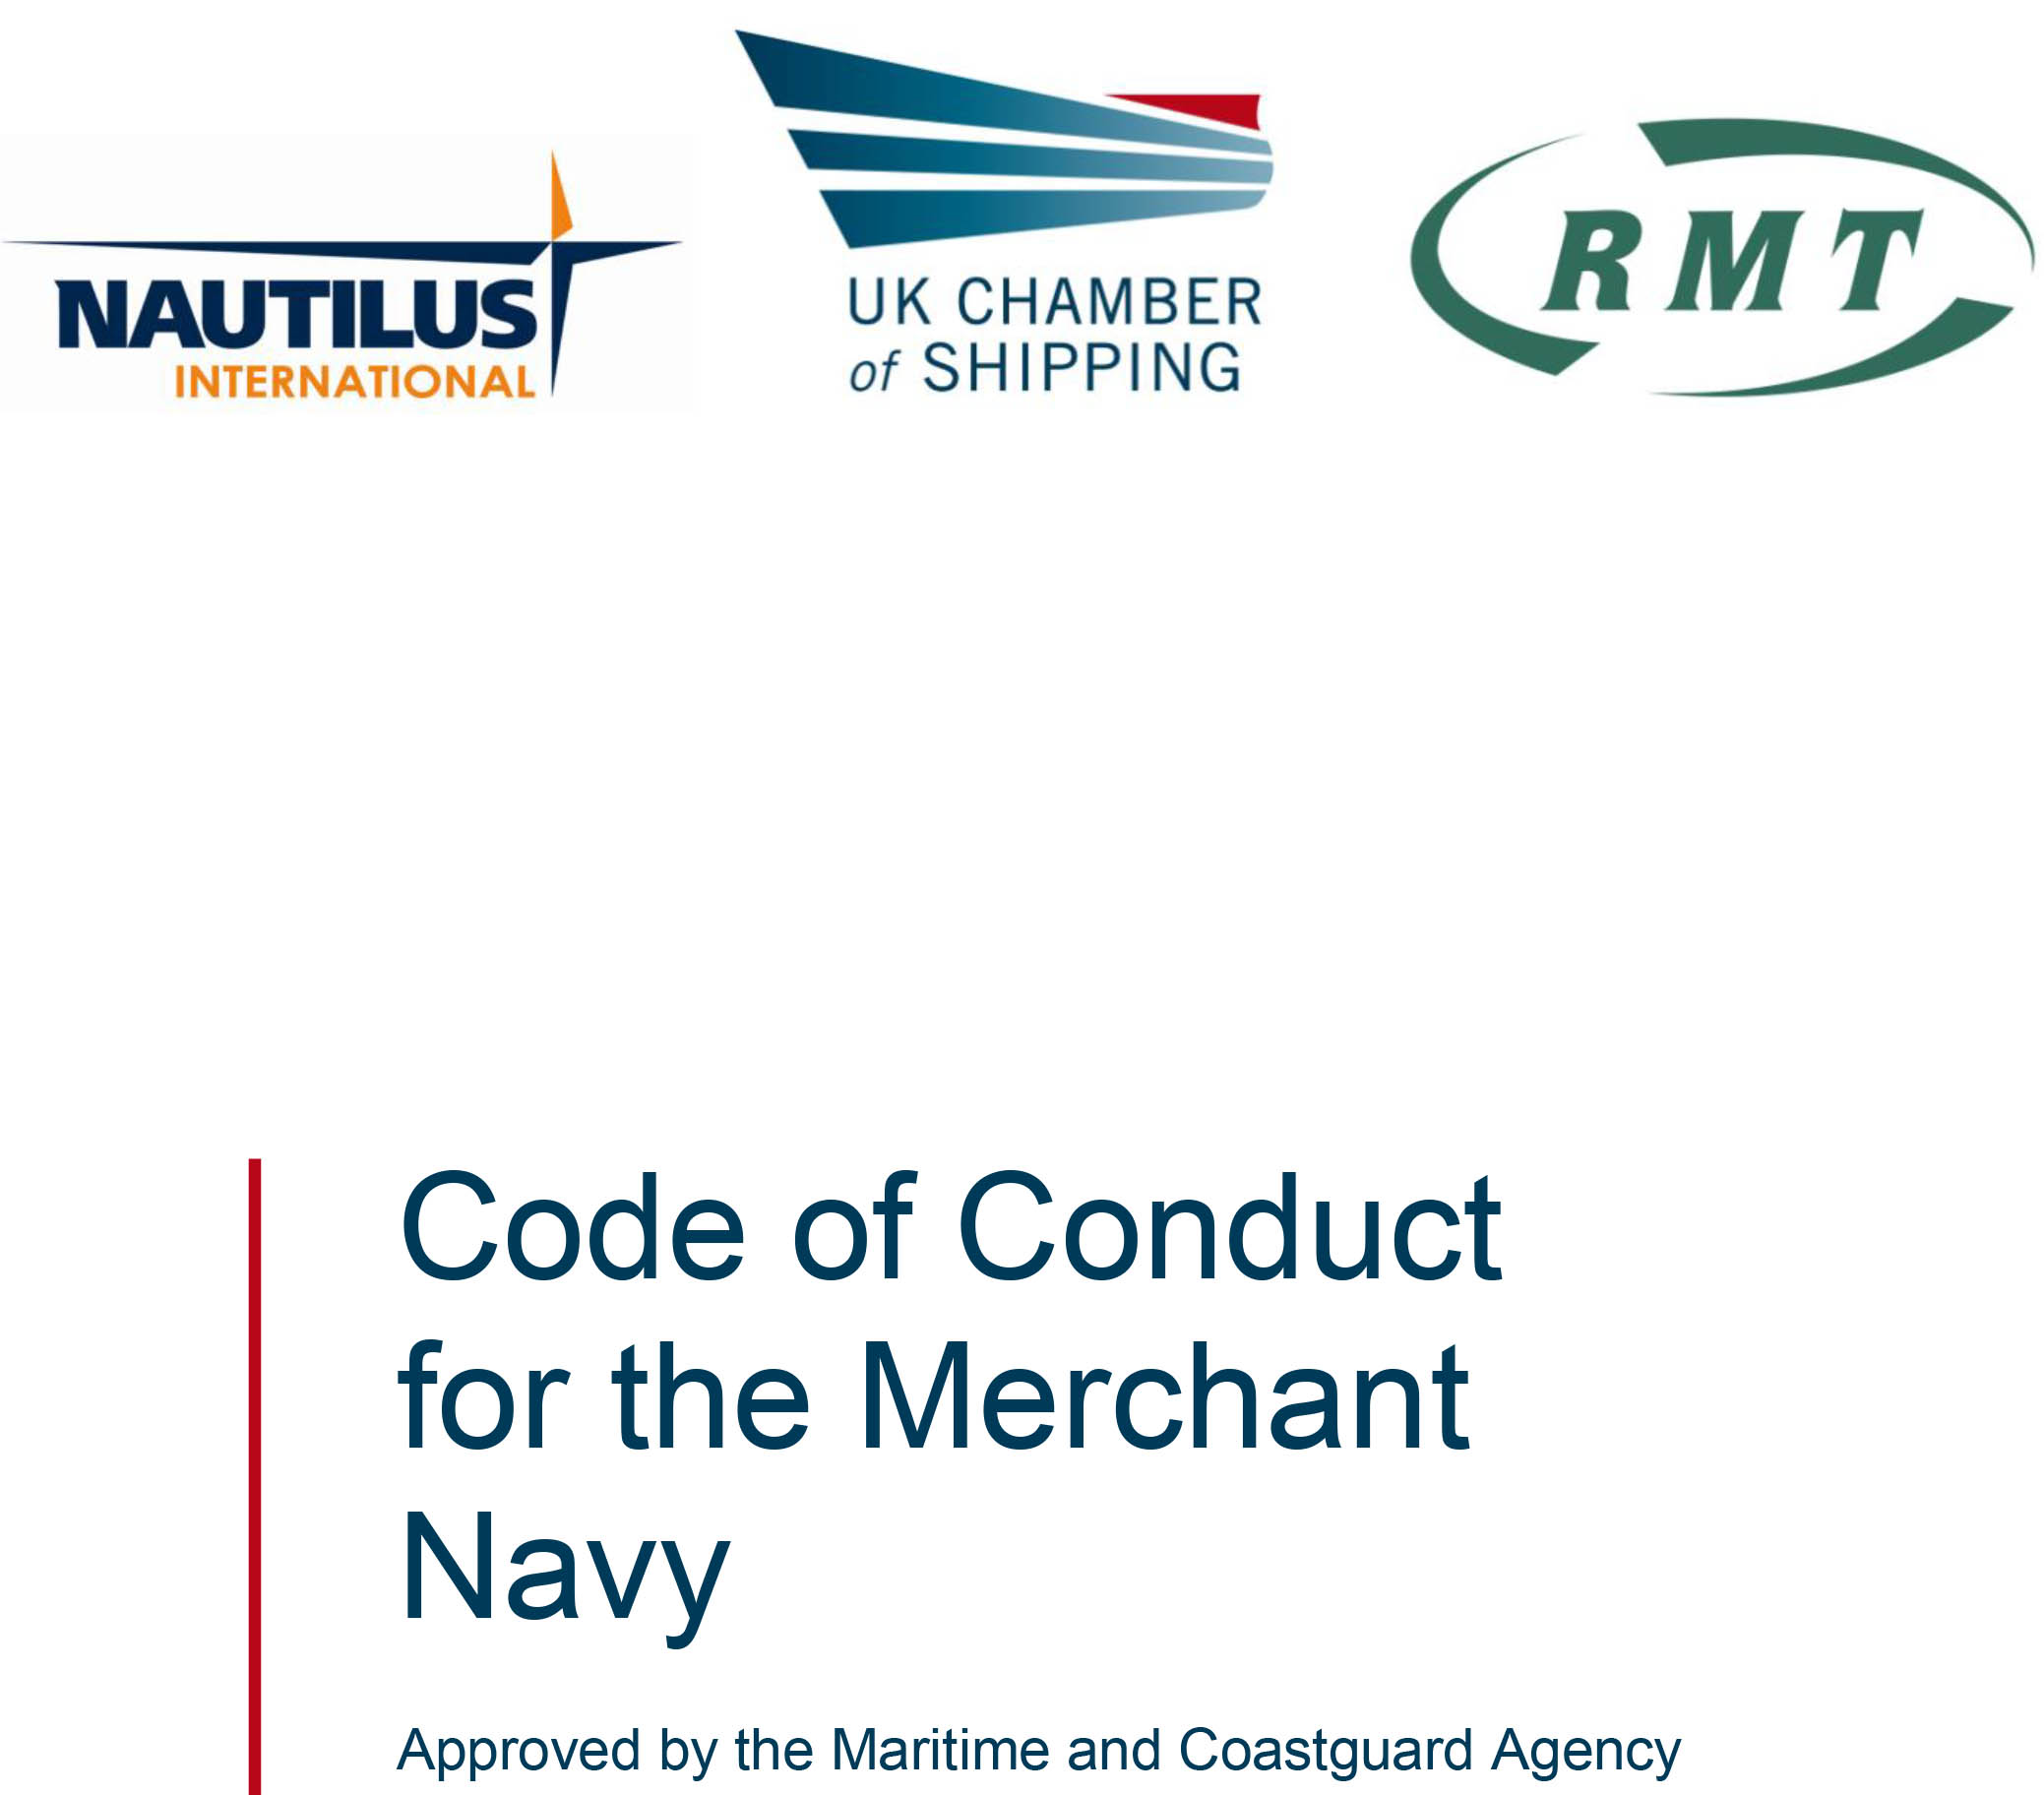 Nautilus Partner Publication Code Of Conduct For The Merchant Navy